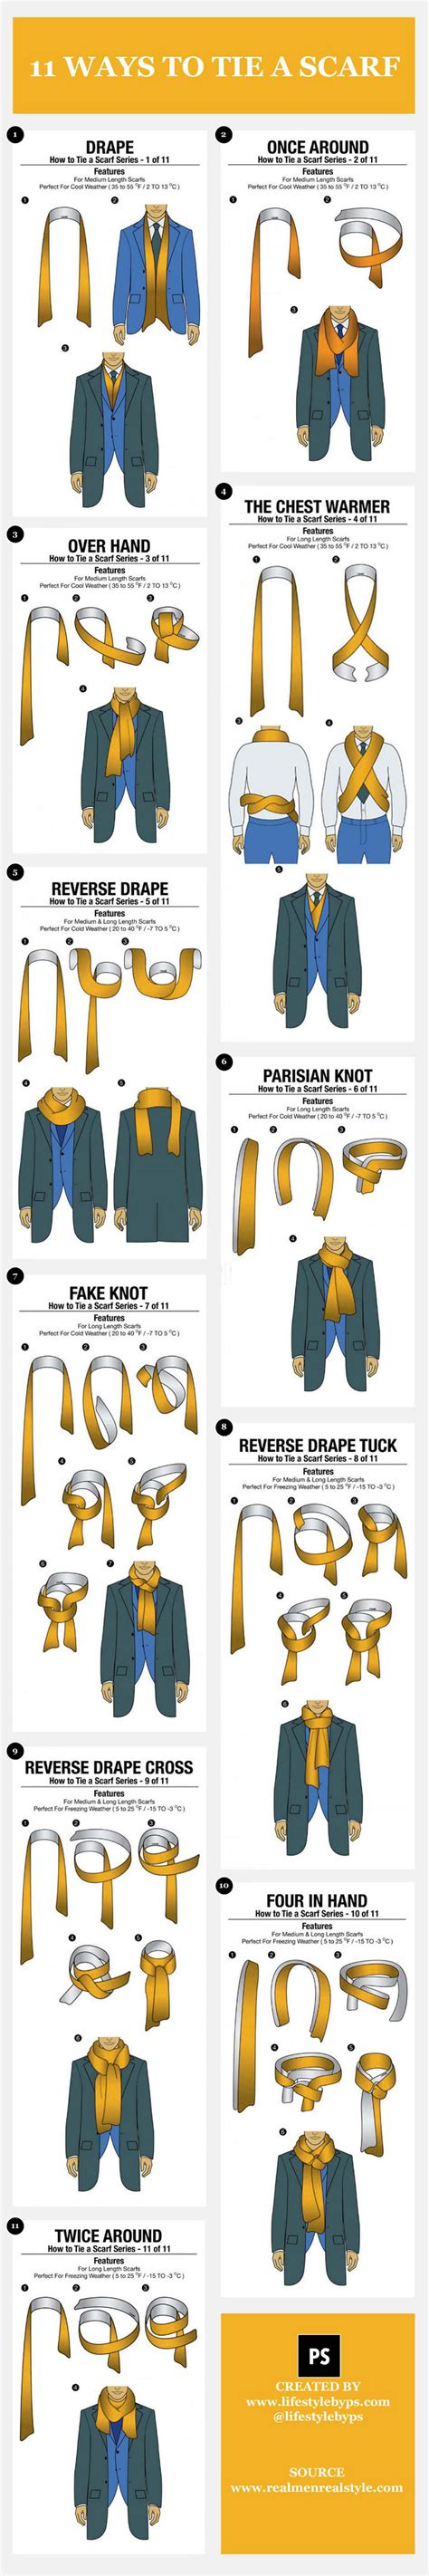 11 different ways to tie a scarf brandongaille